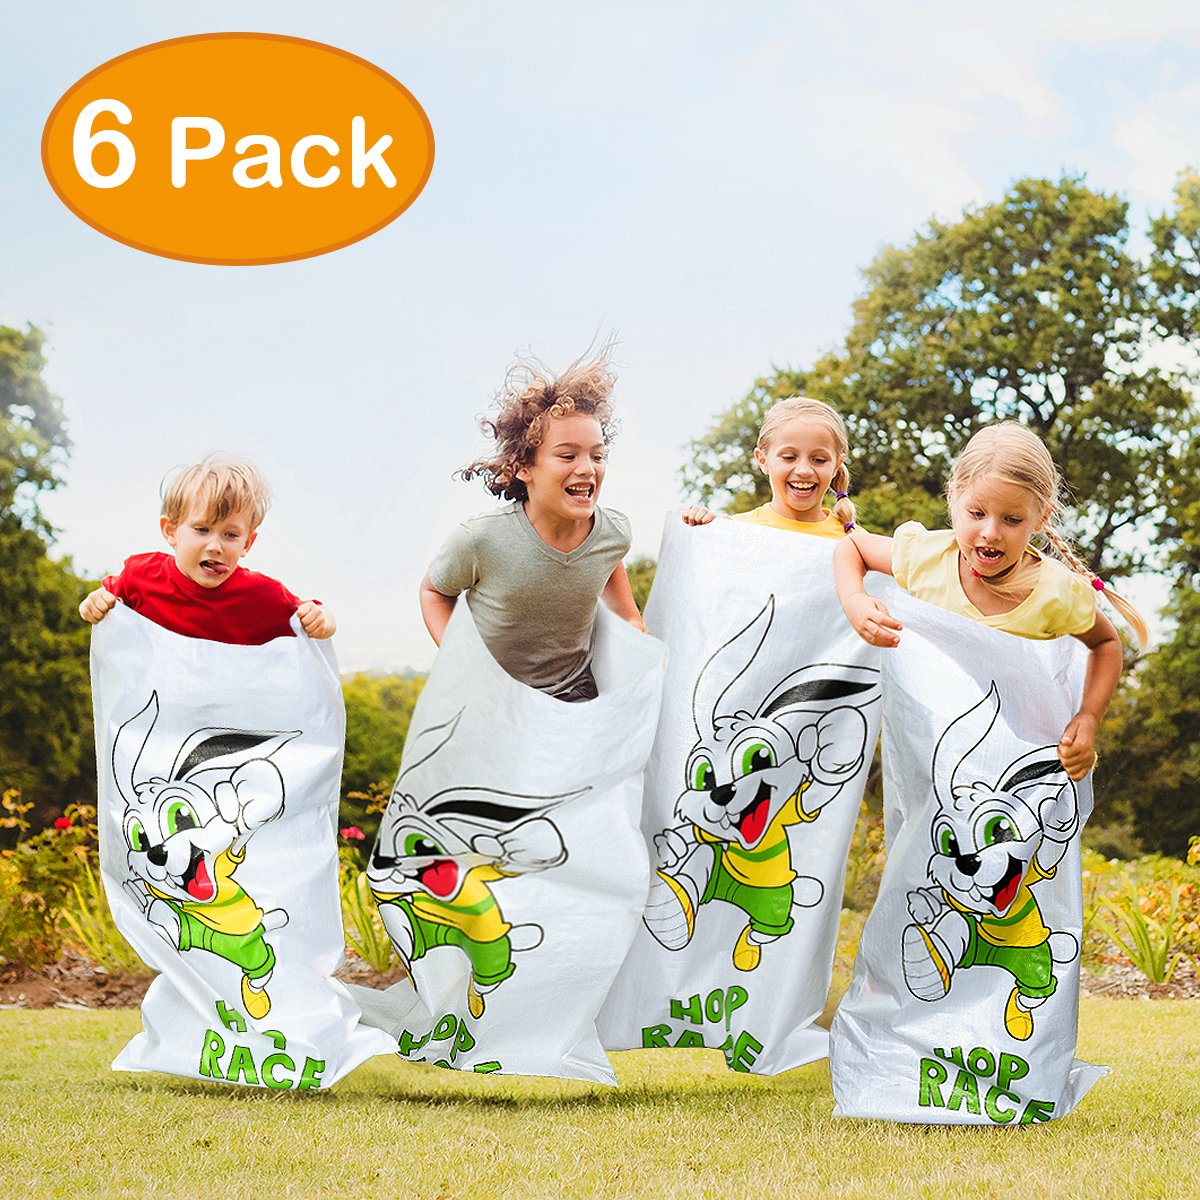 iBaseToy Easter Bag Birthday Party Games 6 Pcs Potato Sack Race Game 24''x41'' Luau Hop Party Activity